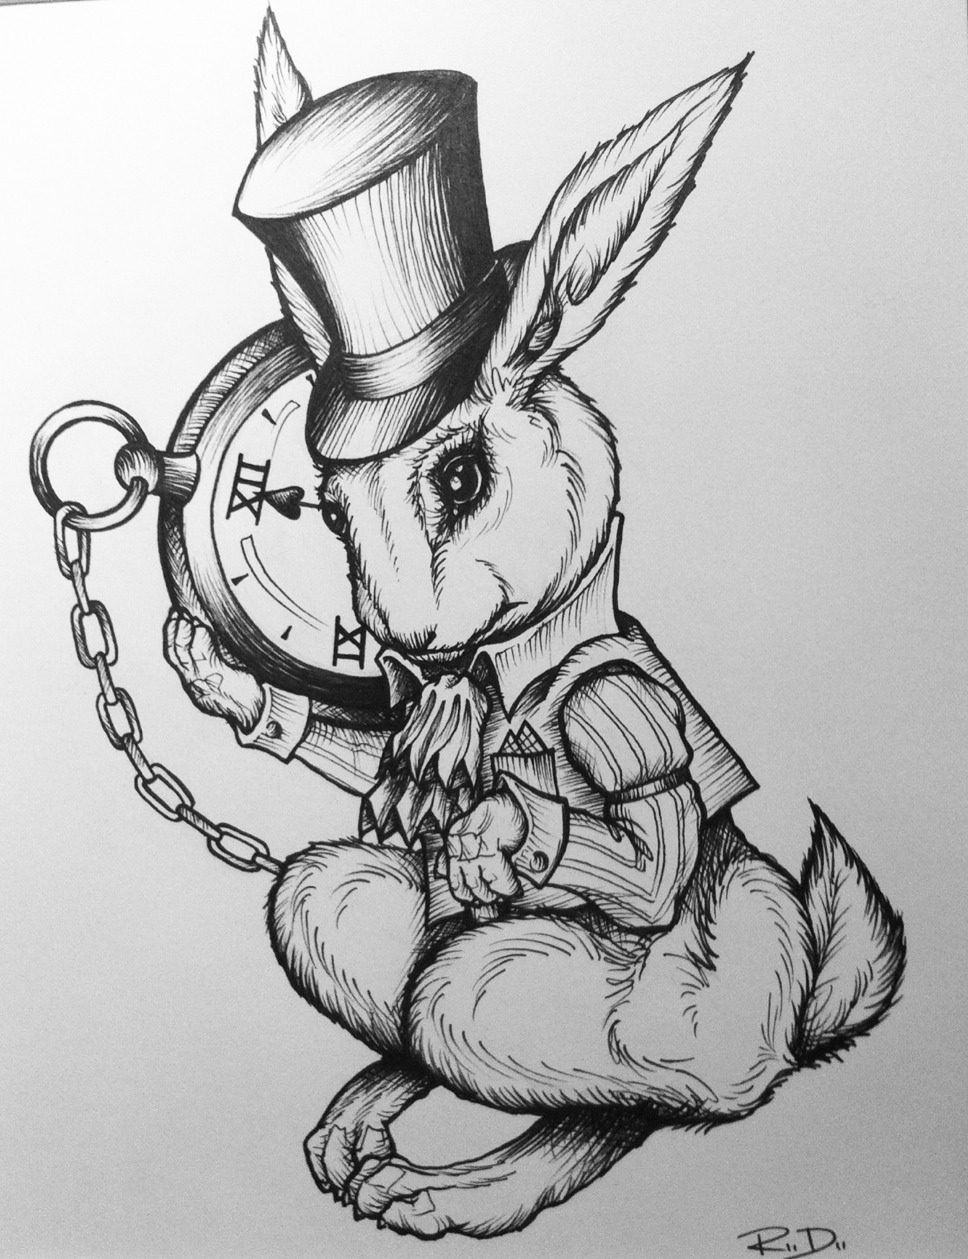 Drawn rabbit alice in wonderland Illustration Rabbit Rabbit rabbit In